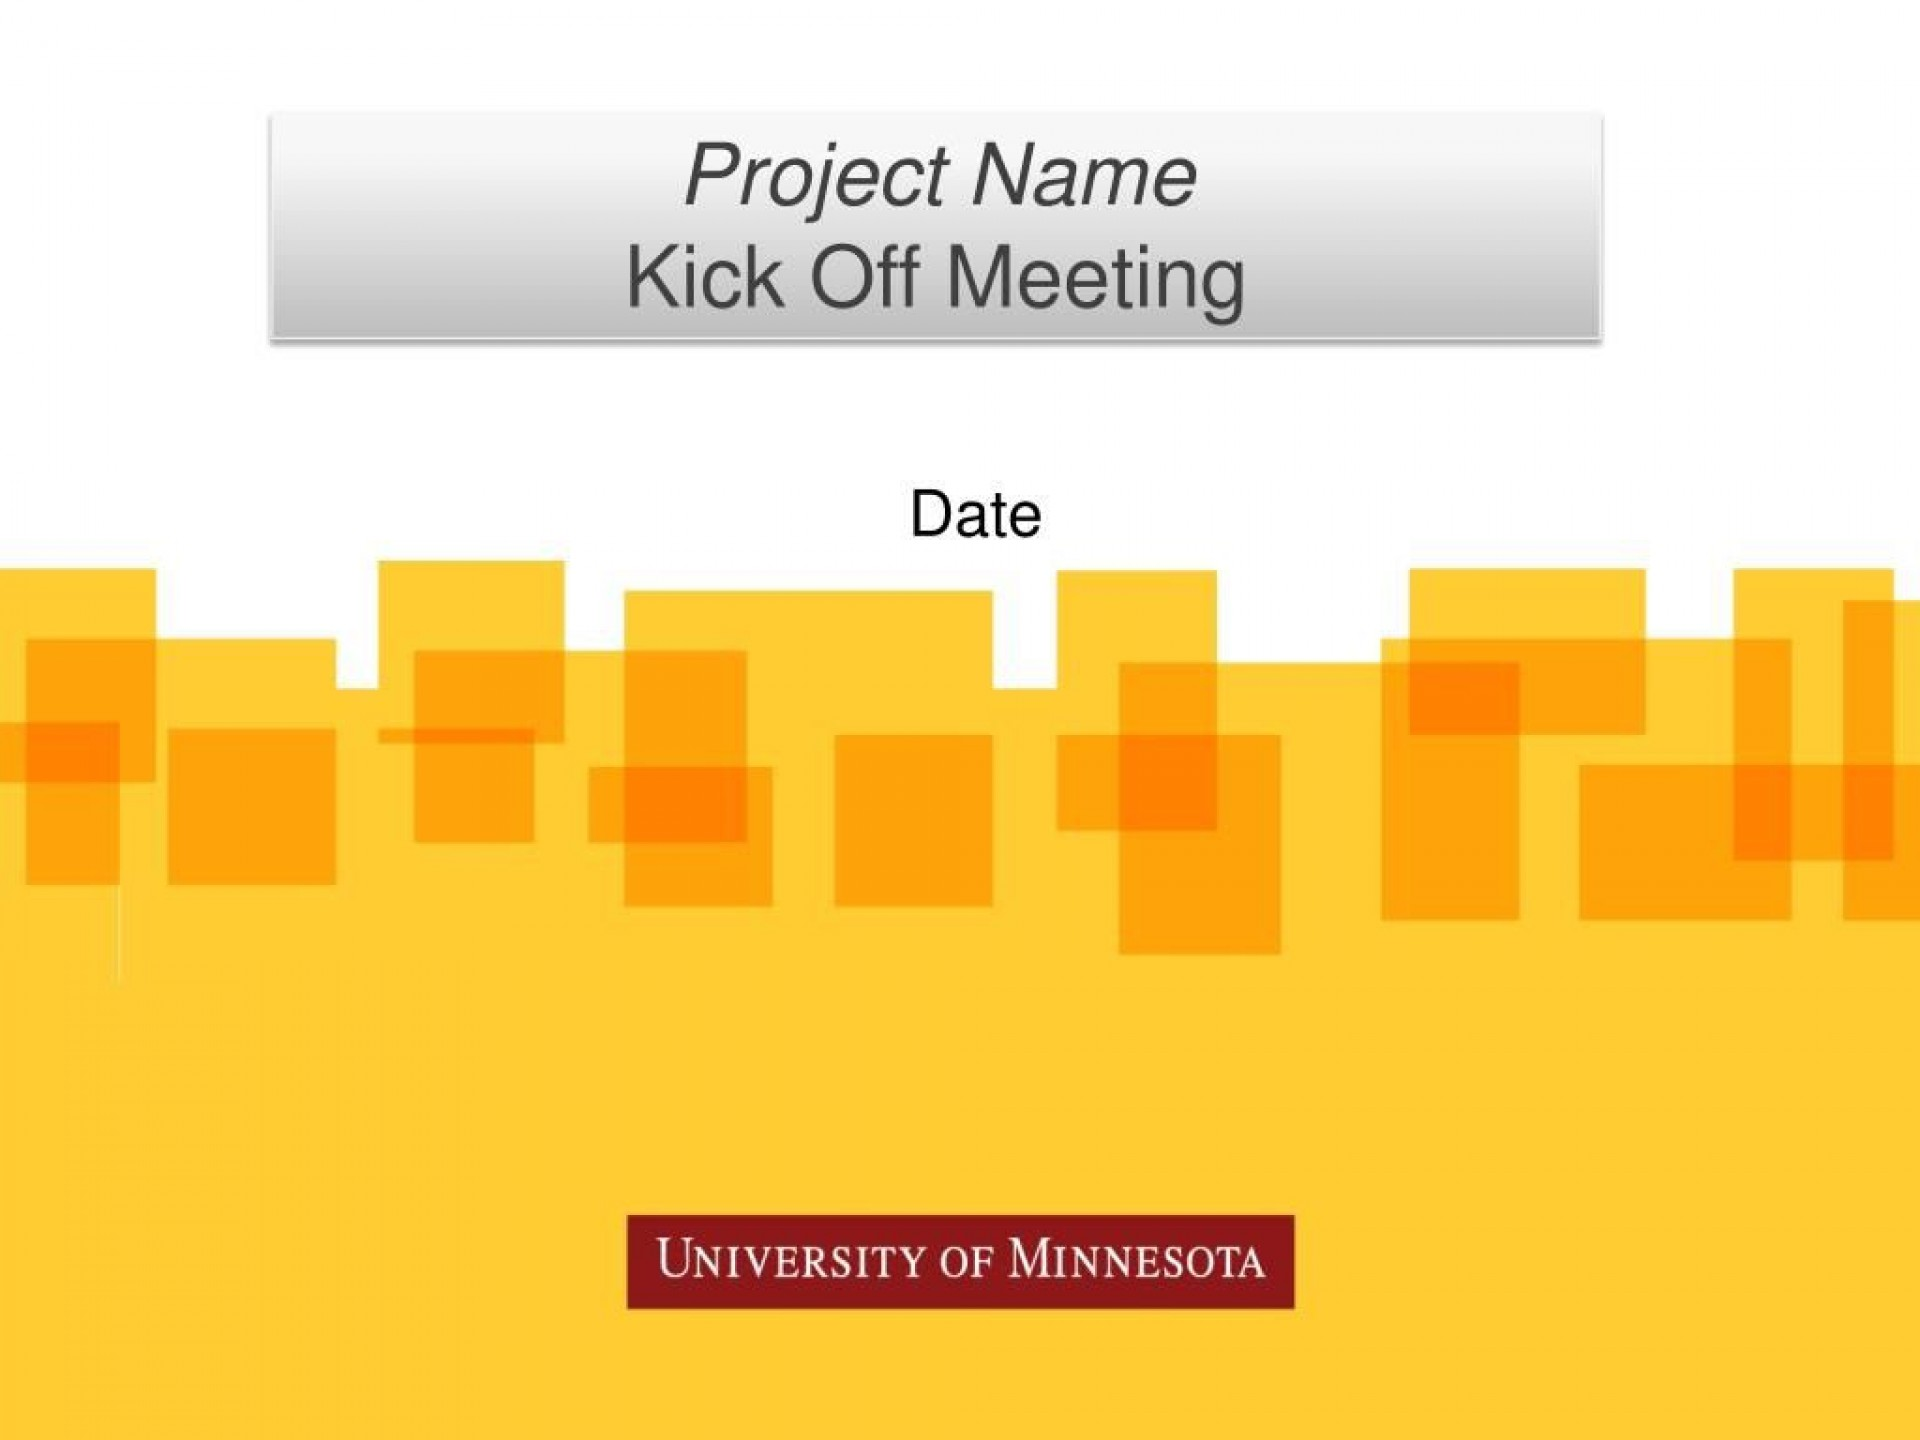 010 Fascinating Project Kickoff Meeting Powerpoint Template Ppt High Def  Kick Off Presentation1920